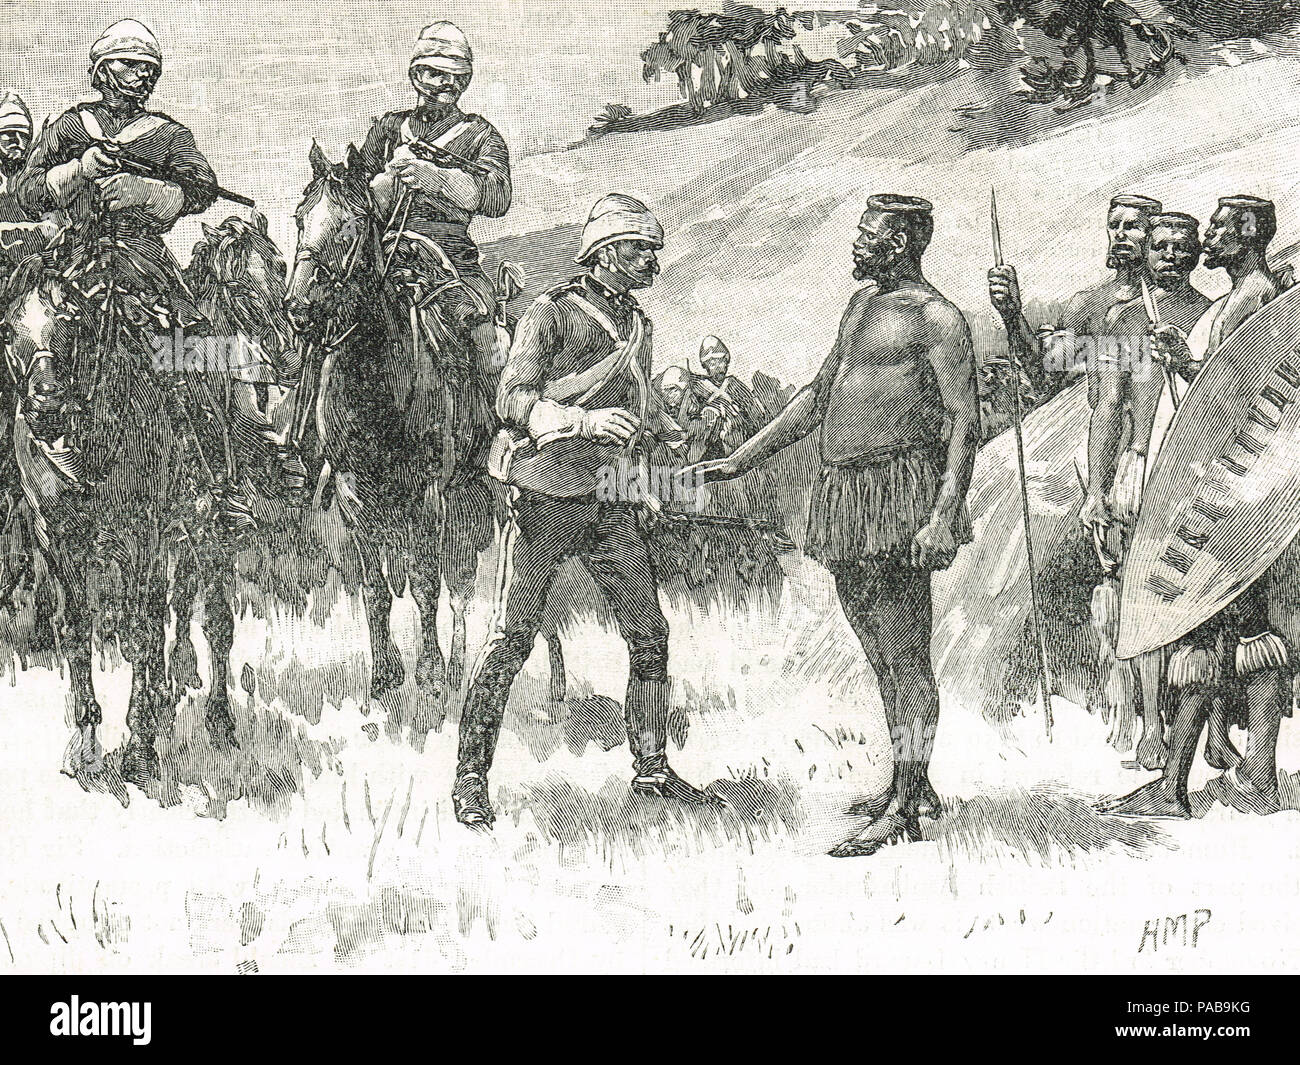 Surrender of Cetshwayo kaMpande, 29 August 1880, king of the Zulu Kingdom from 1873 to 1879, captured by soldiers under Wolseley's command at a kraal in the Ngome forest - Stock Image